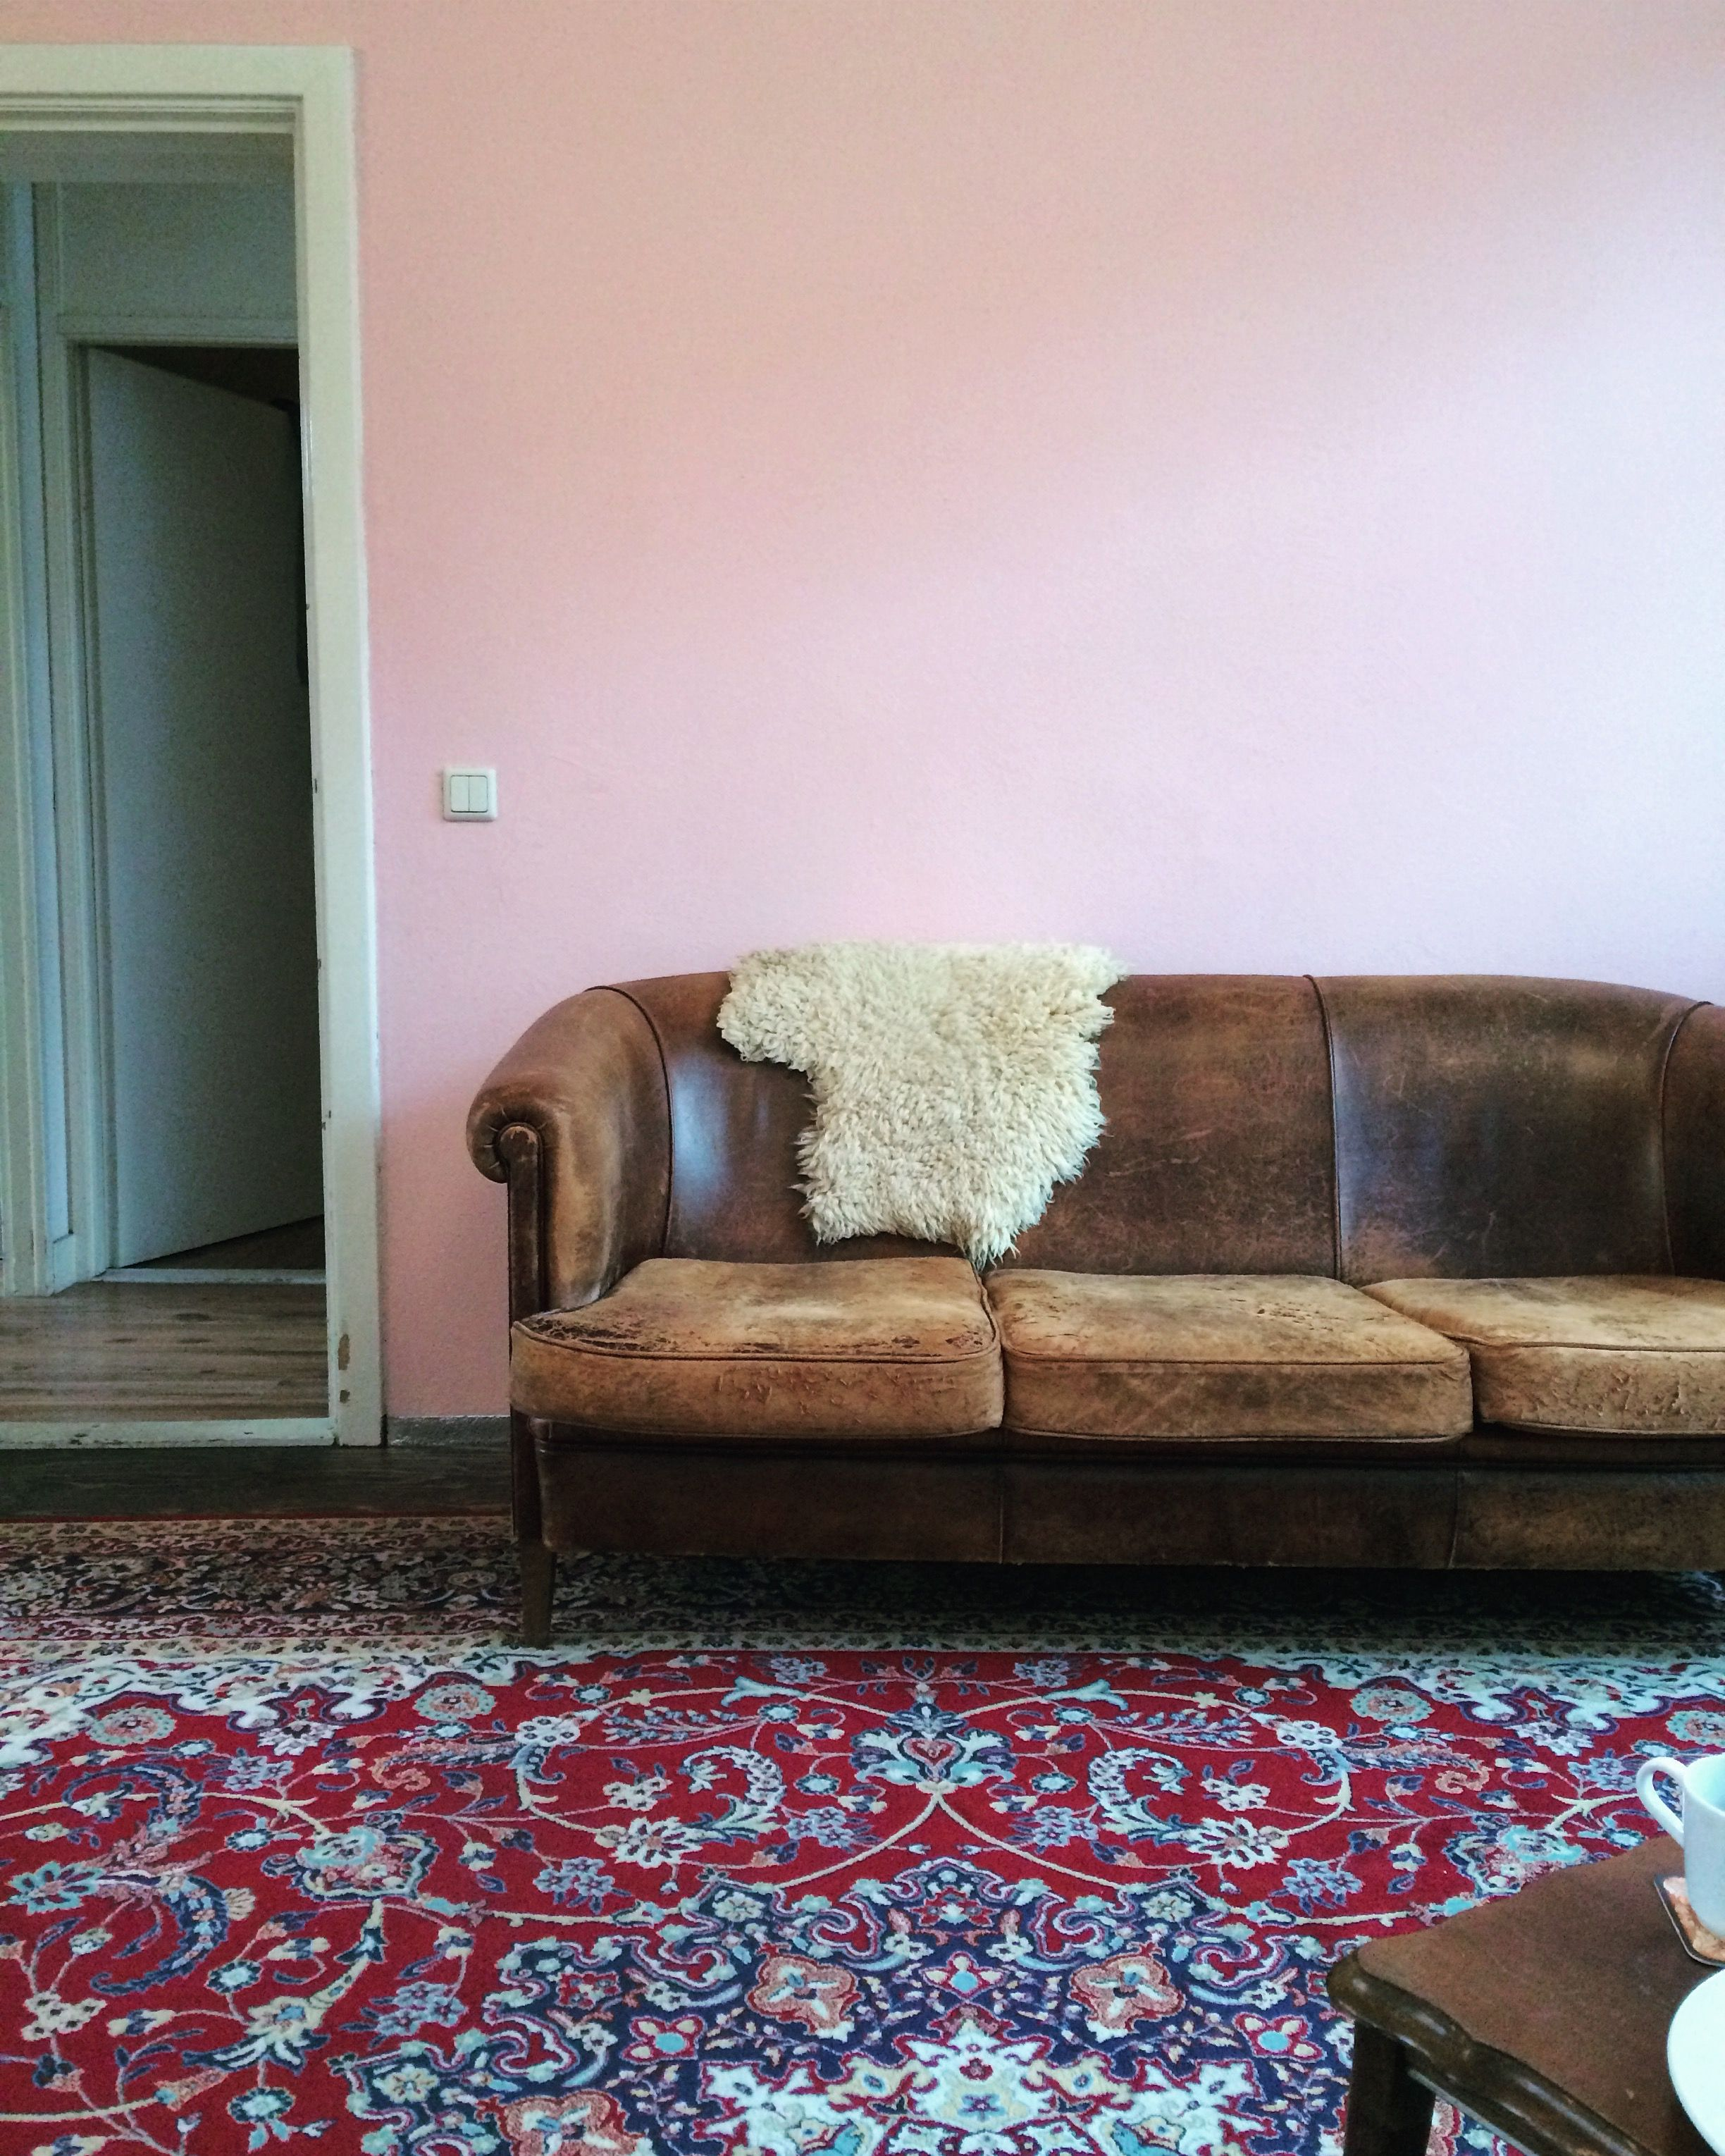 Seats En Sofa Arnhem Living Room Pink Wall Sheep Skin Sheep Leather Couch Persian Rug